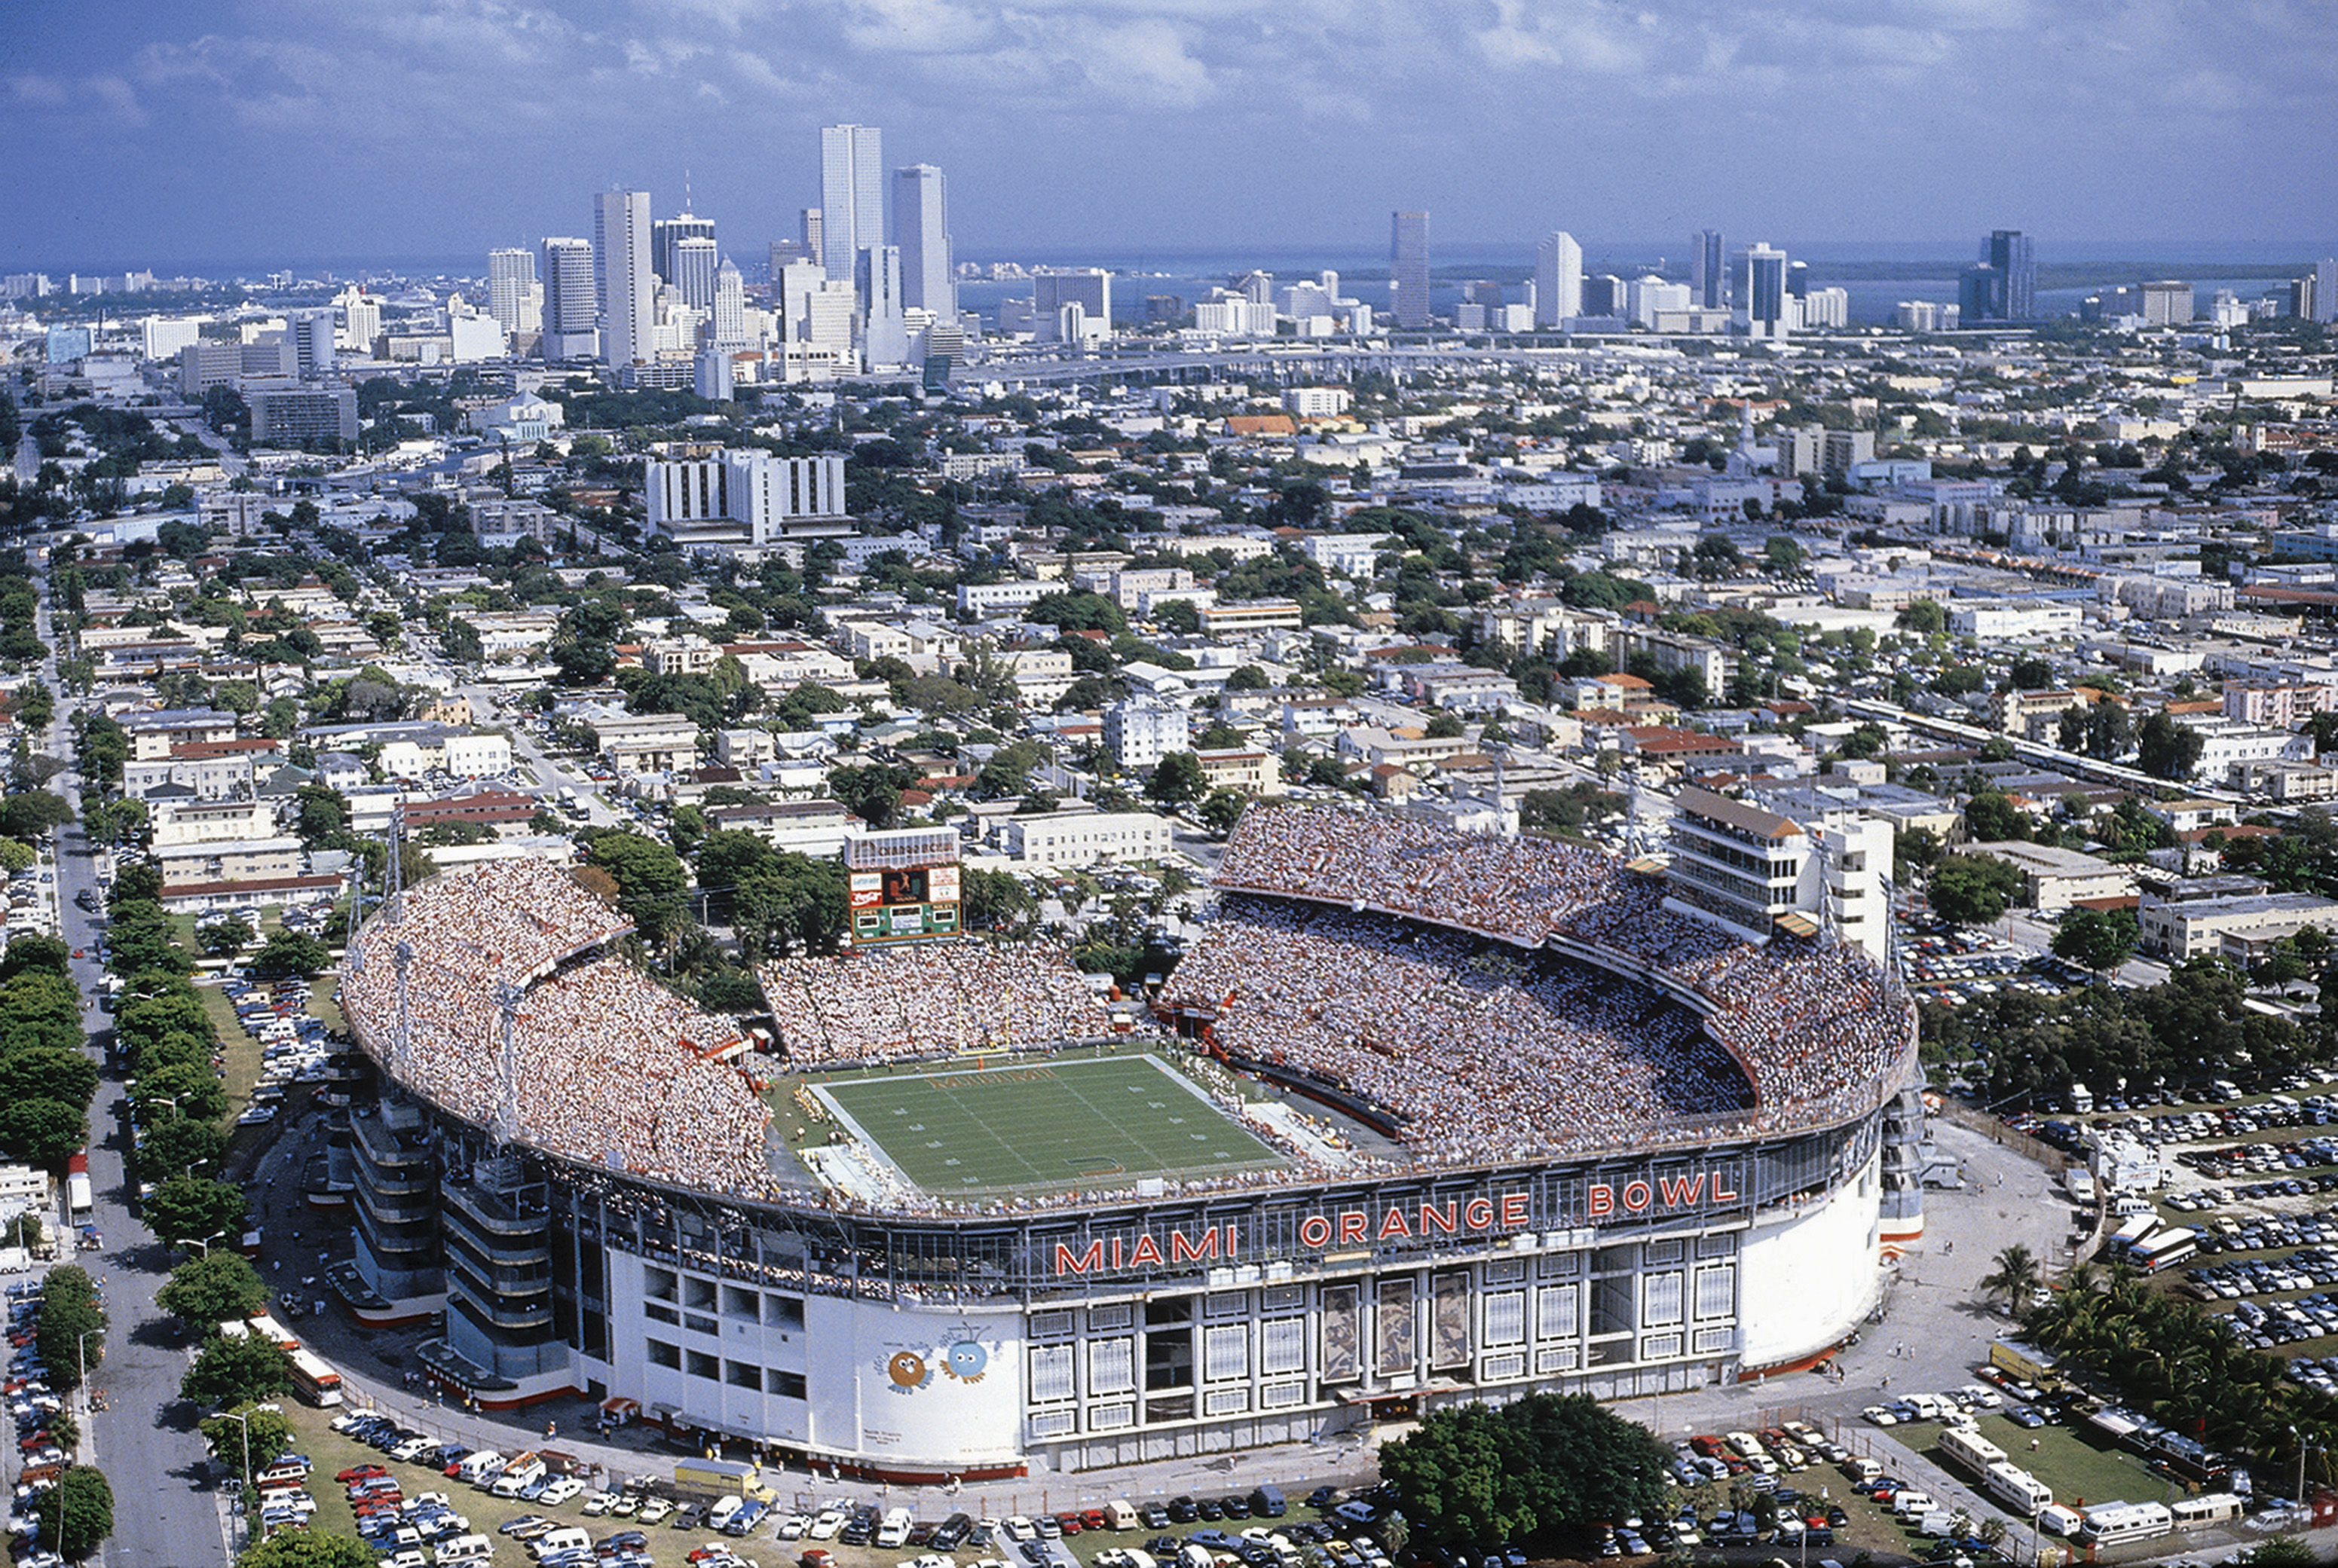 Although the game had been referred to as the  Super Bowl  since the start, it was only at Super Bowl III, held at the Miami Orange Bowl, that football's championship game received the now legendary official billing. Opened in 1937, the original Orange Bowl was demolished in 2008 to make room for a new Florida Marlins baseball stadium.